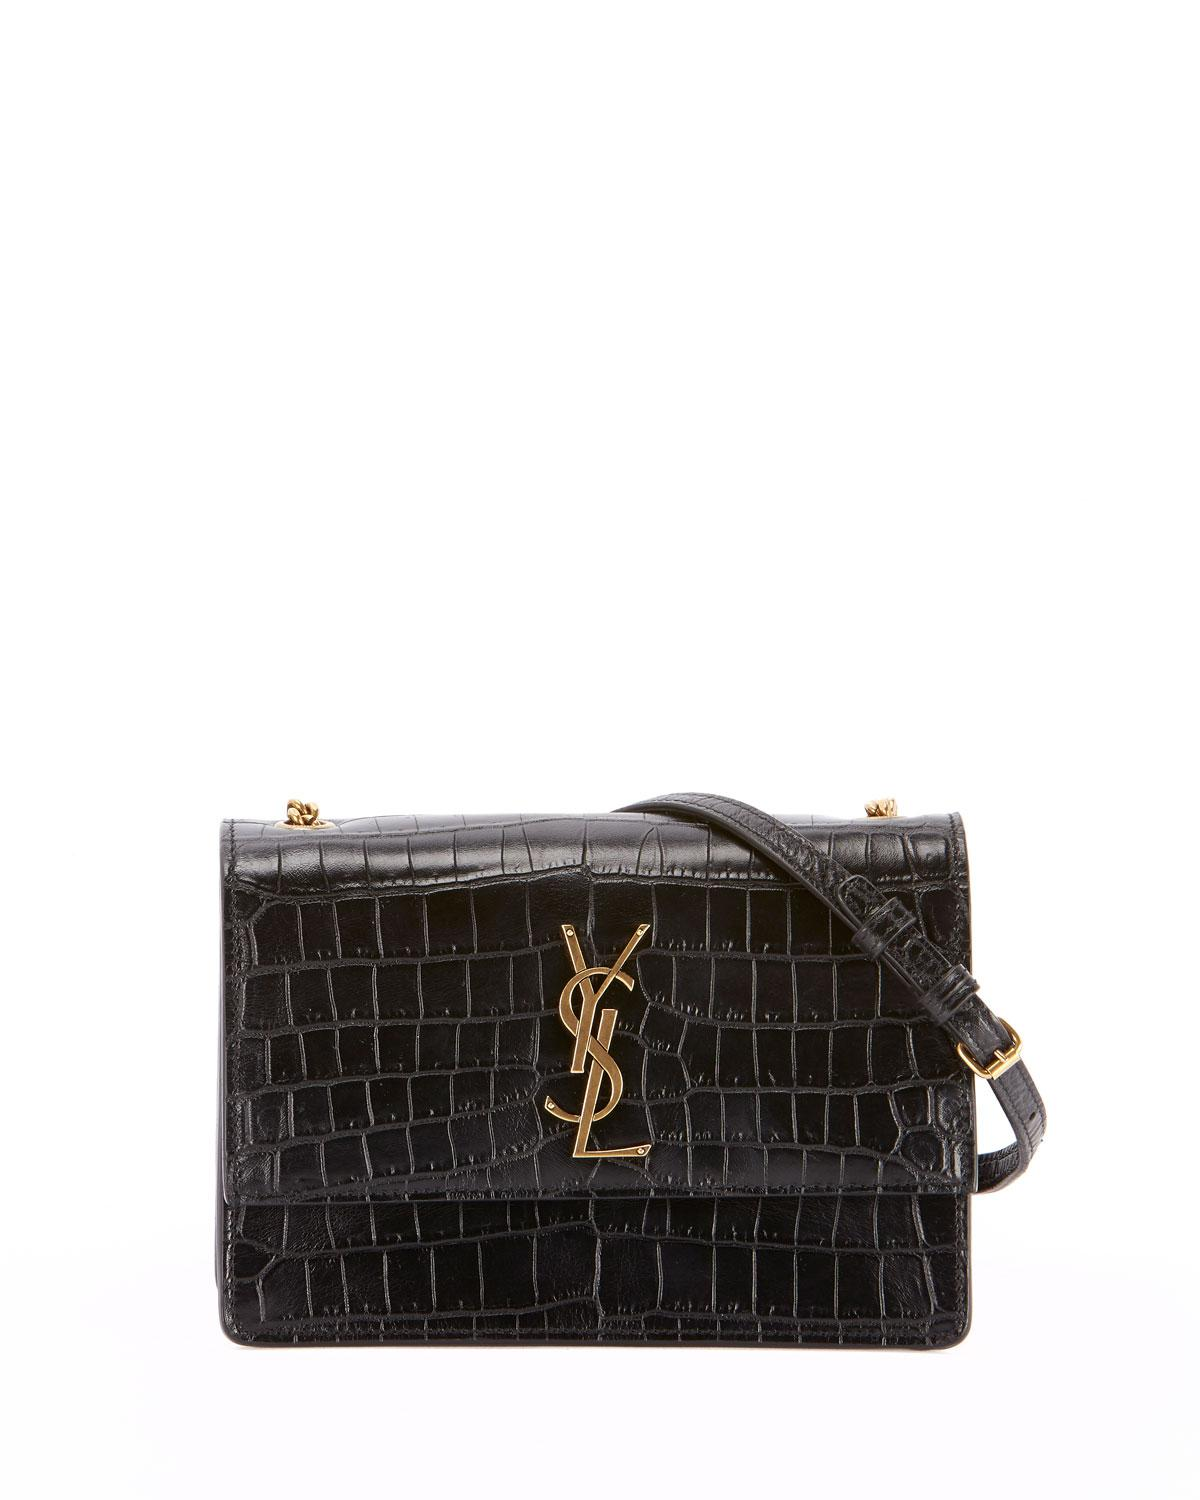 Lyst - Saint Laurent Monogram Ysl Sunset Small Chain Croco Shoulder ... 3c57c1ea7559f